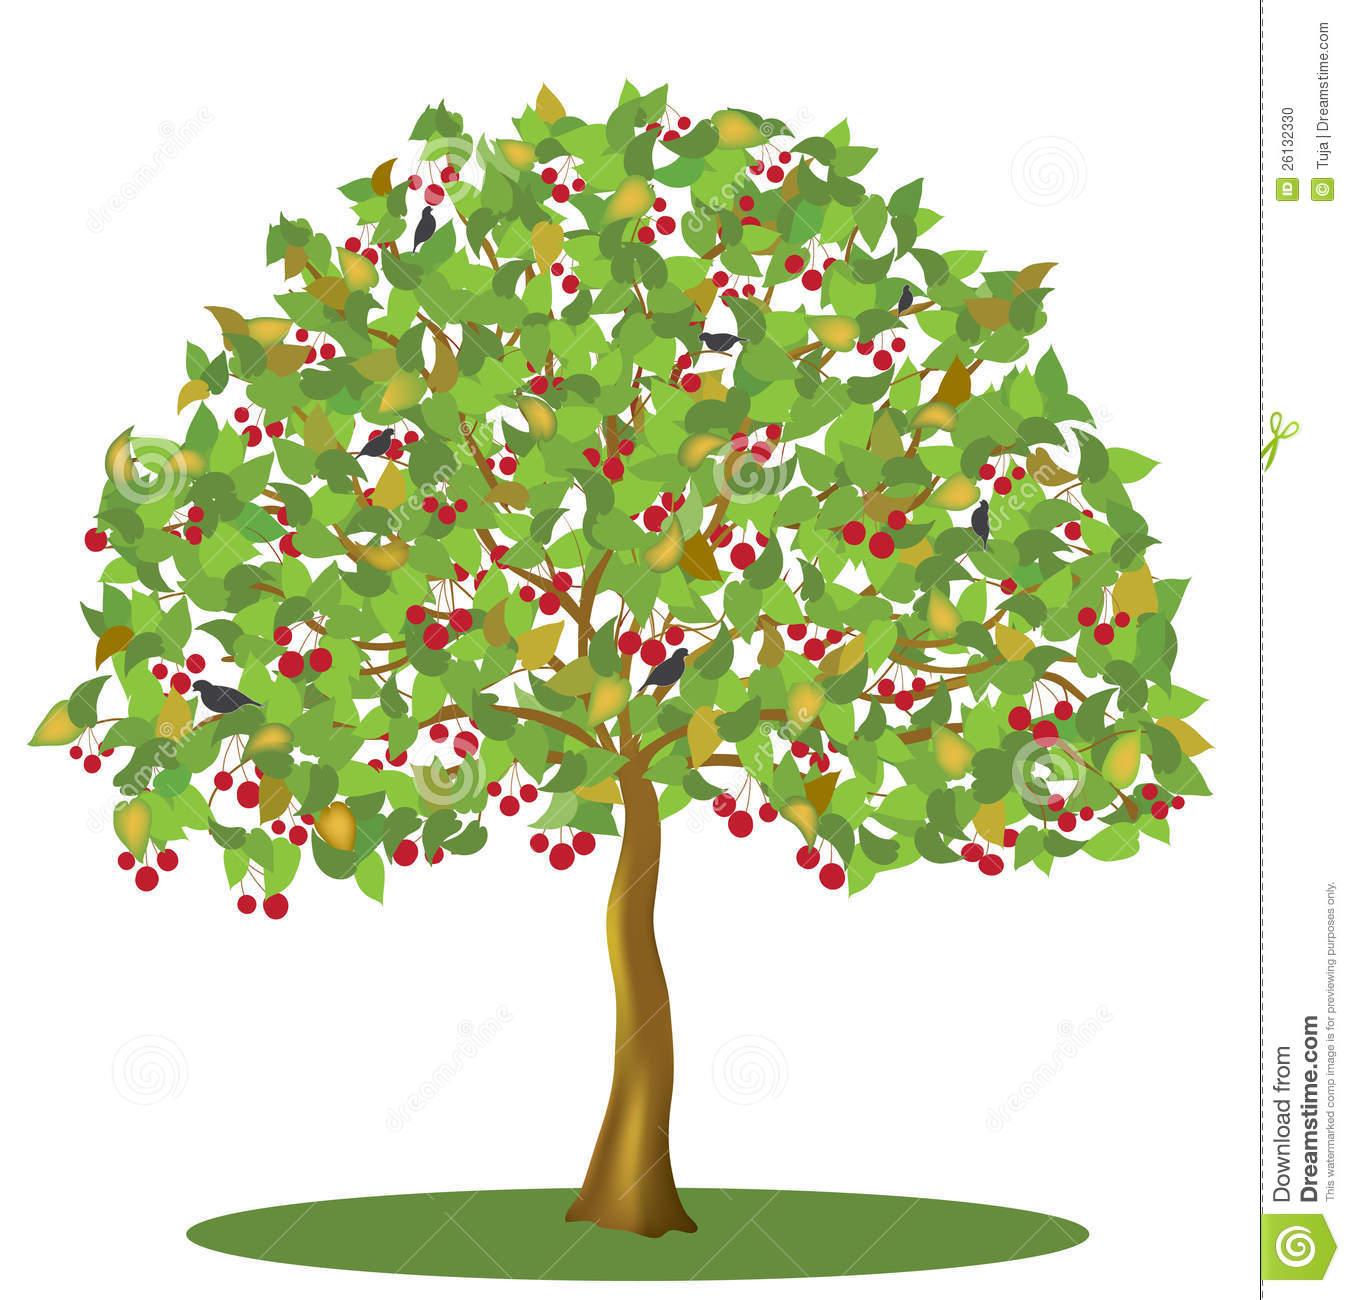 Berries on a tree clipart.